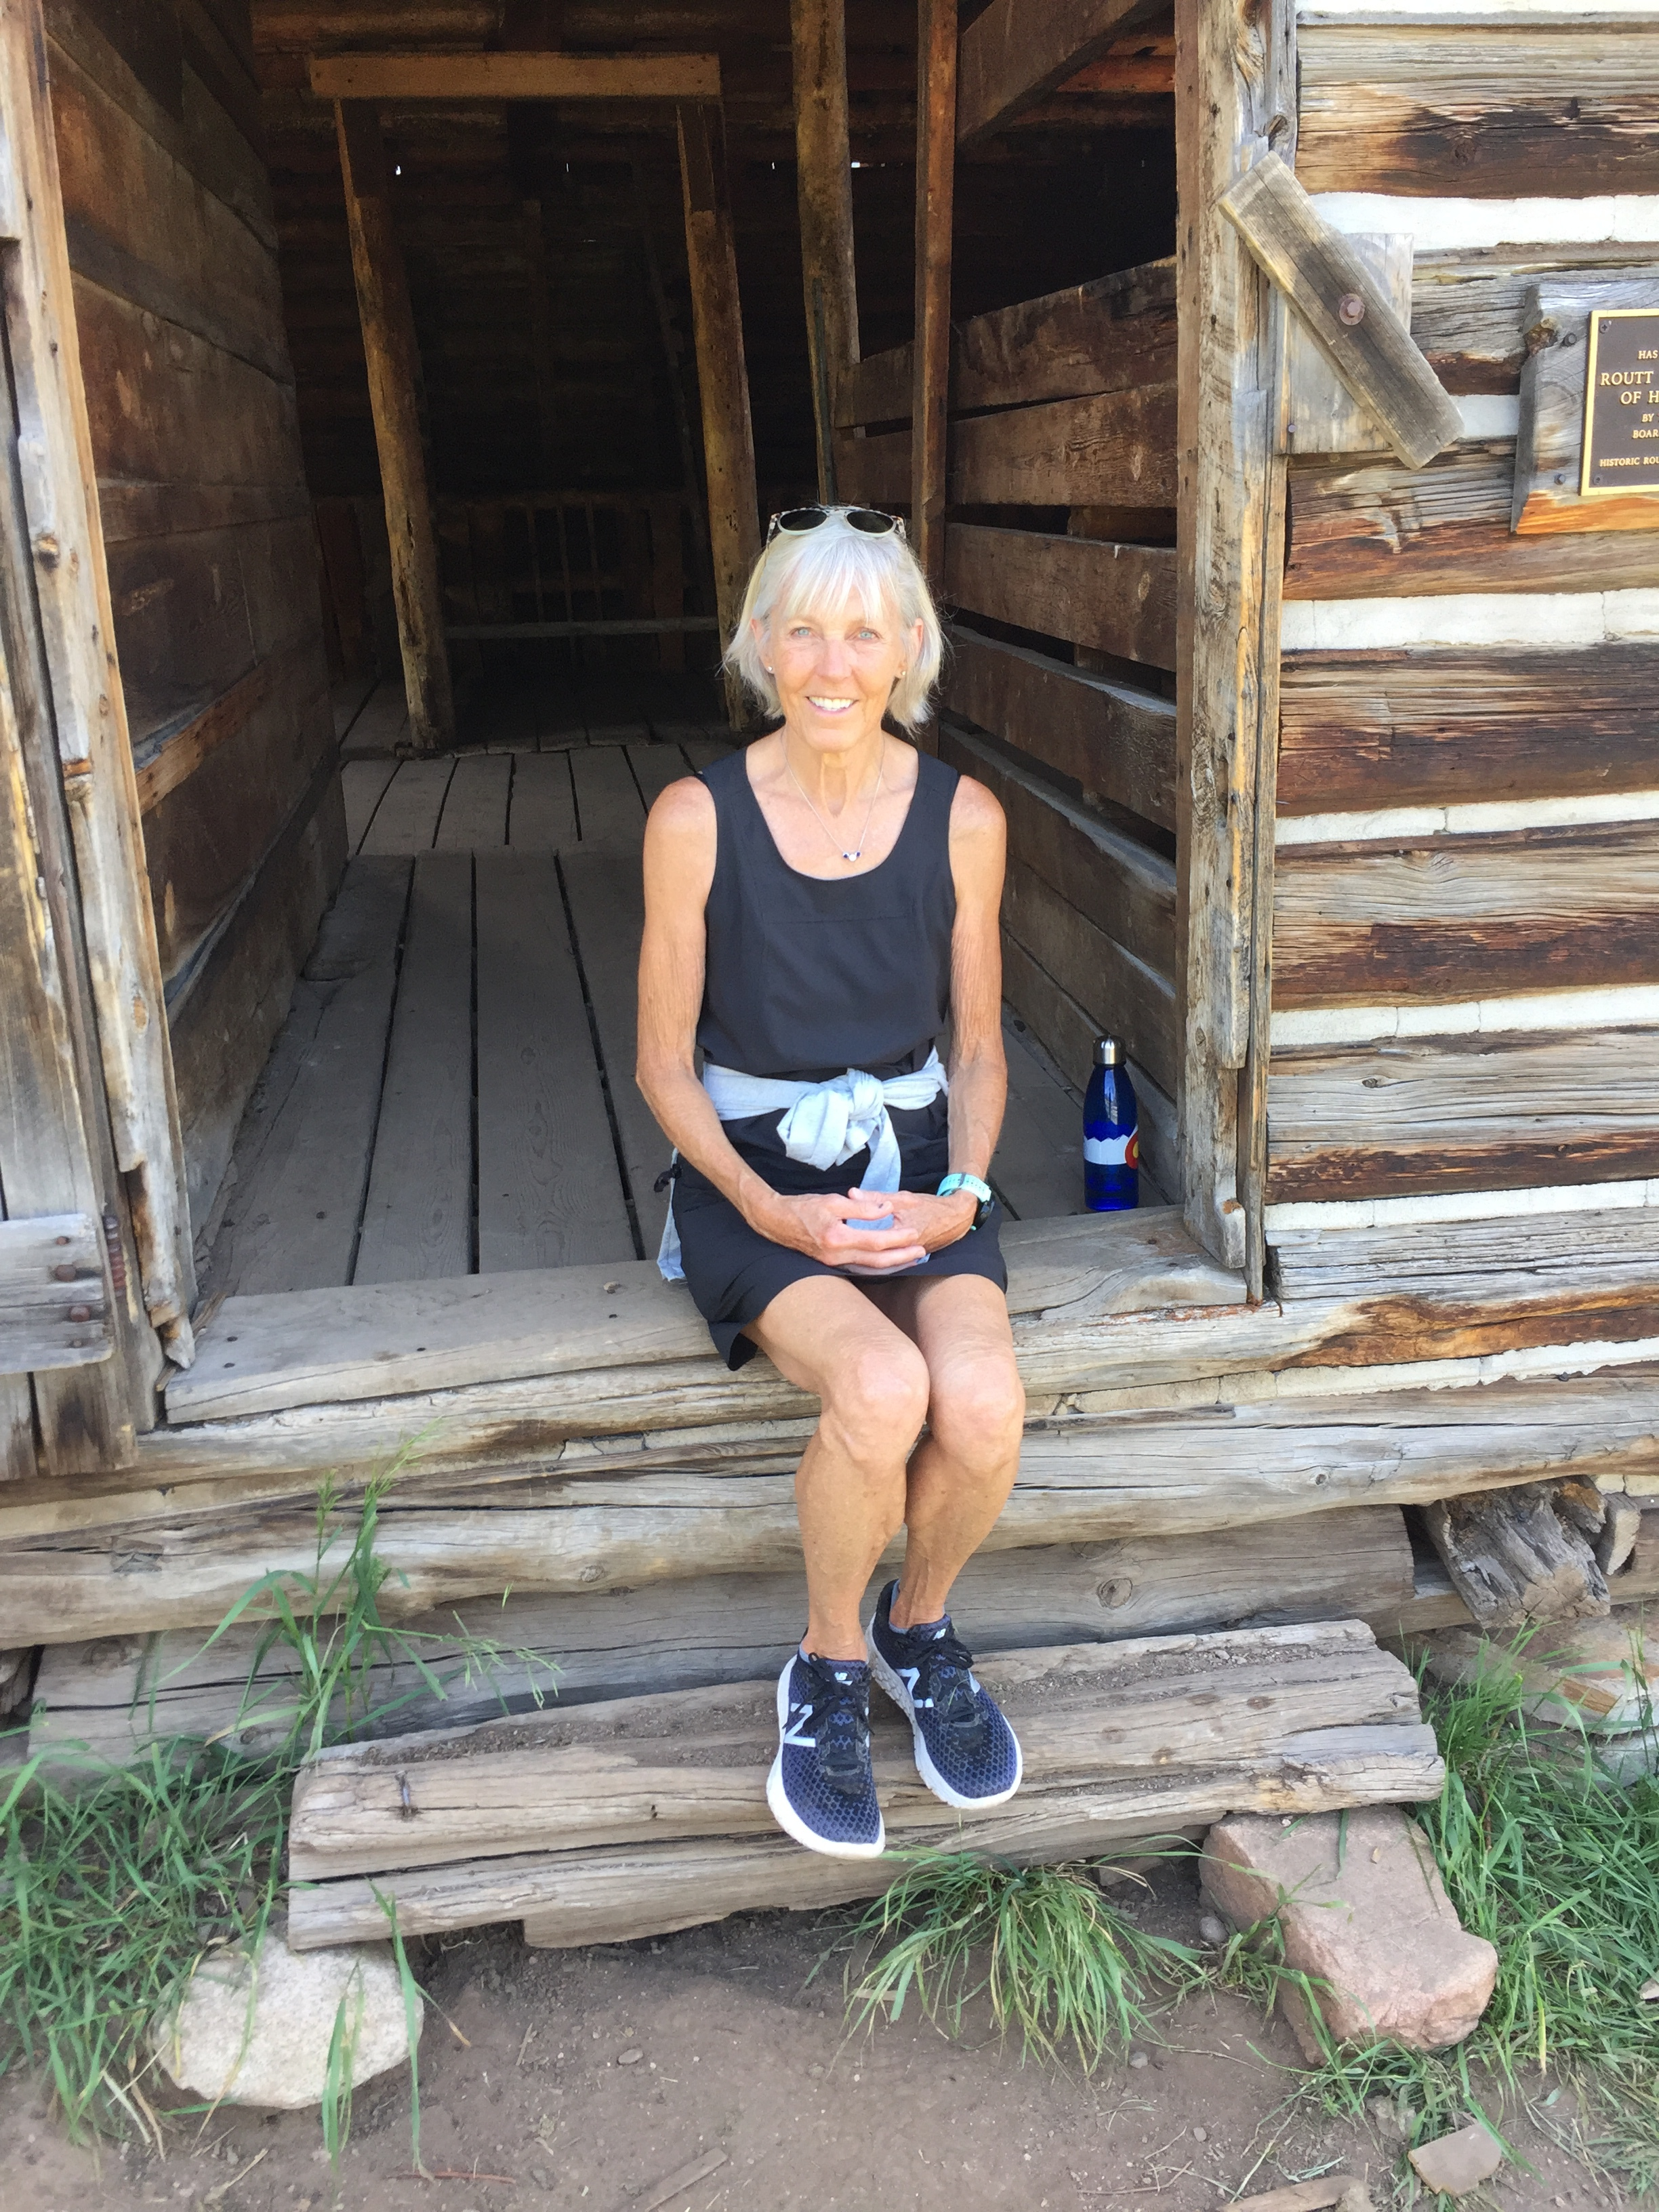 Here I am on steps of Mad Barn, built in 1905 and remodeled in early 2000s, about mid-way through hike.